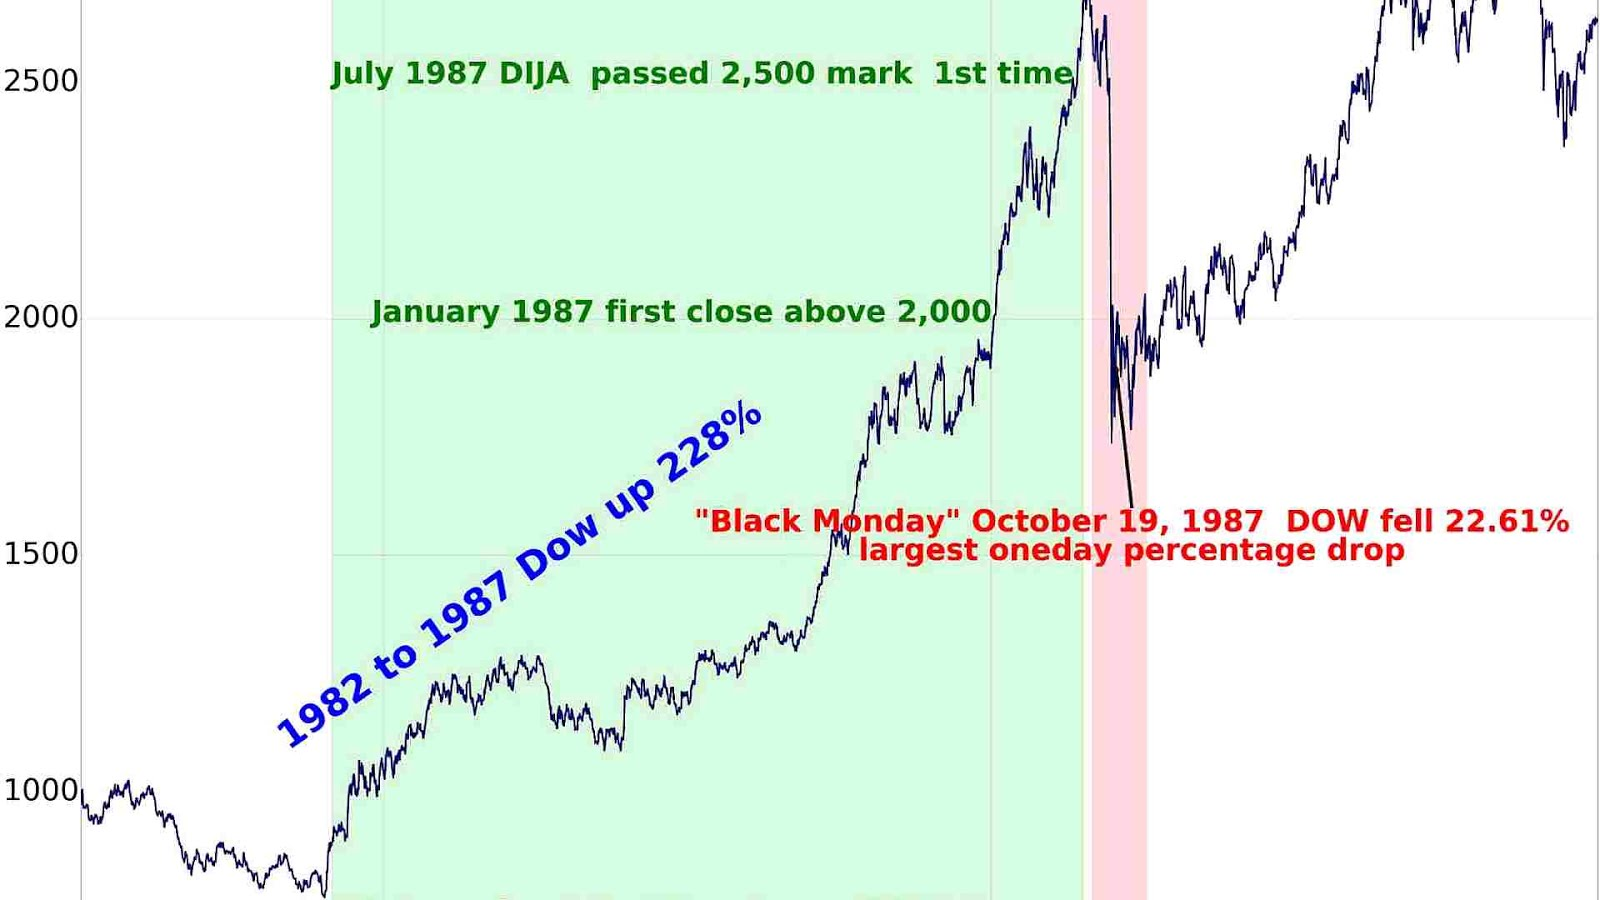 Dow Jones Index Historical Chart - Index Choices